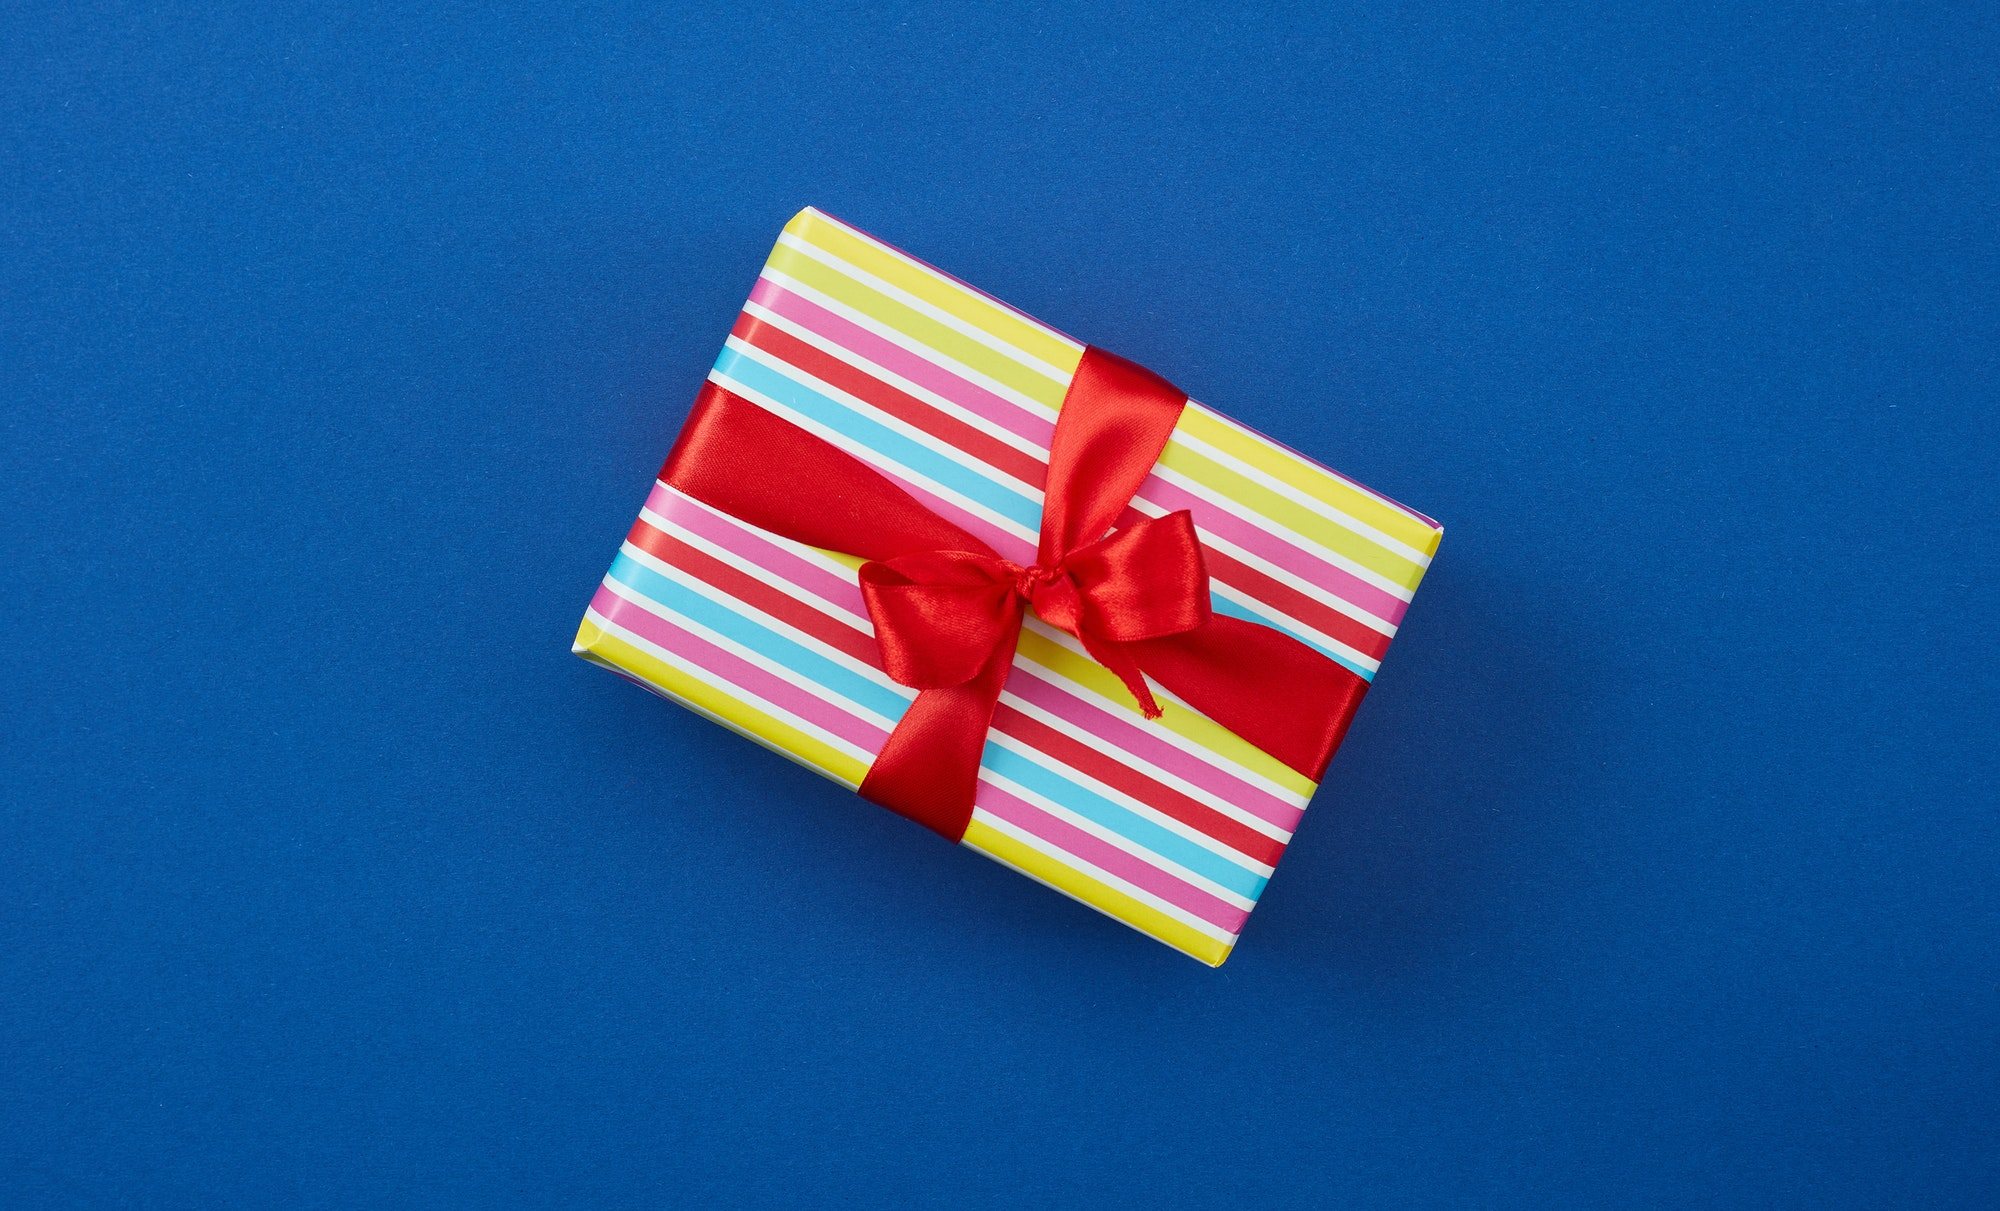 How to get reviews on Amazon: image of a wrapped gift box that a customer would receive